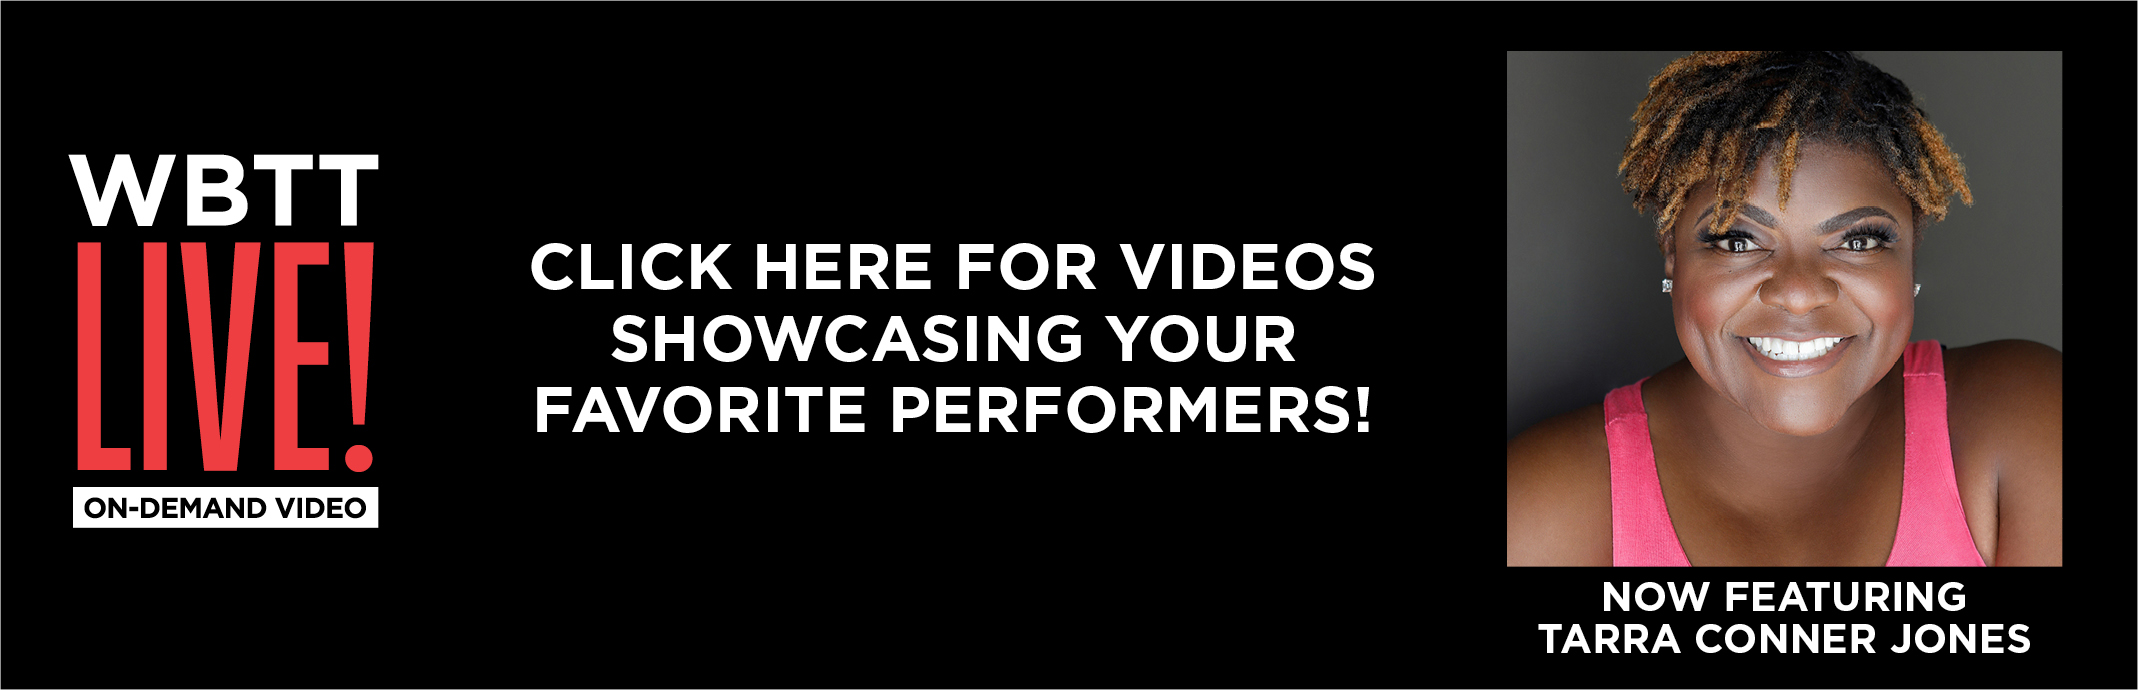 WBTT Live On-Demand Video! Click here for videos featuring songs and stories from your favorite performers!